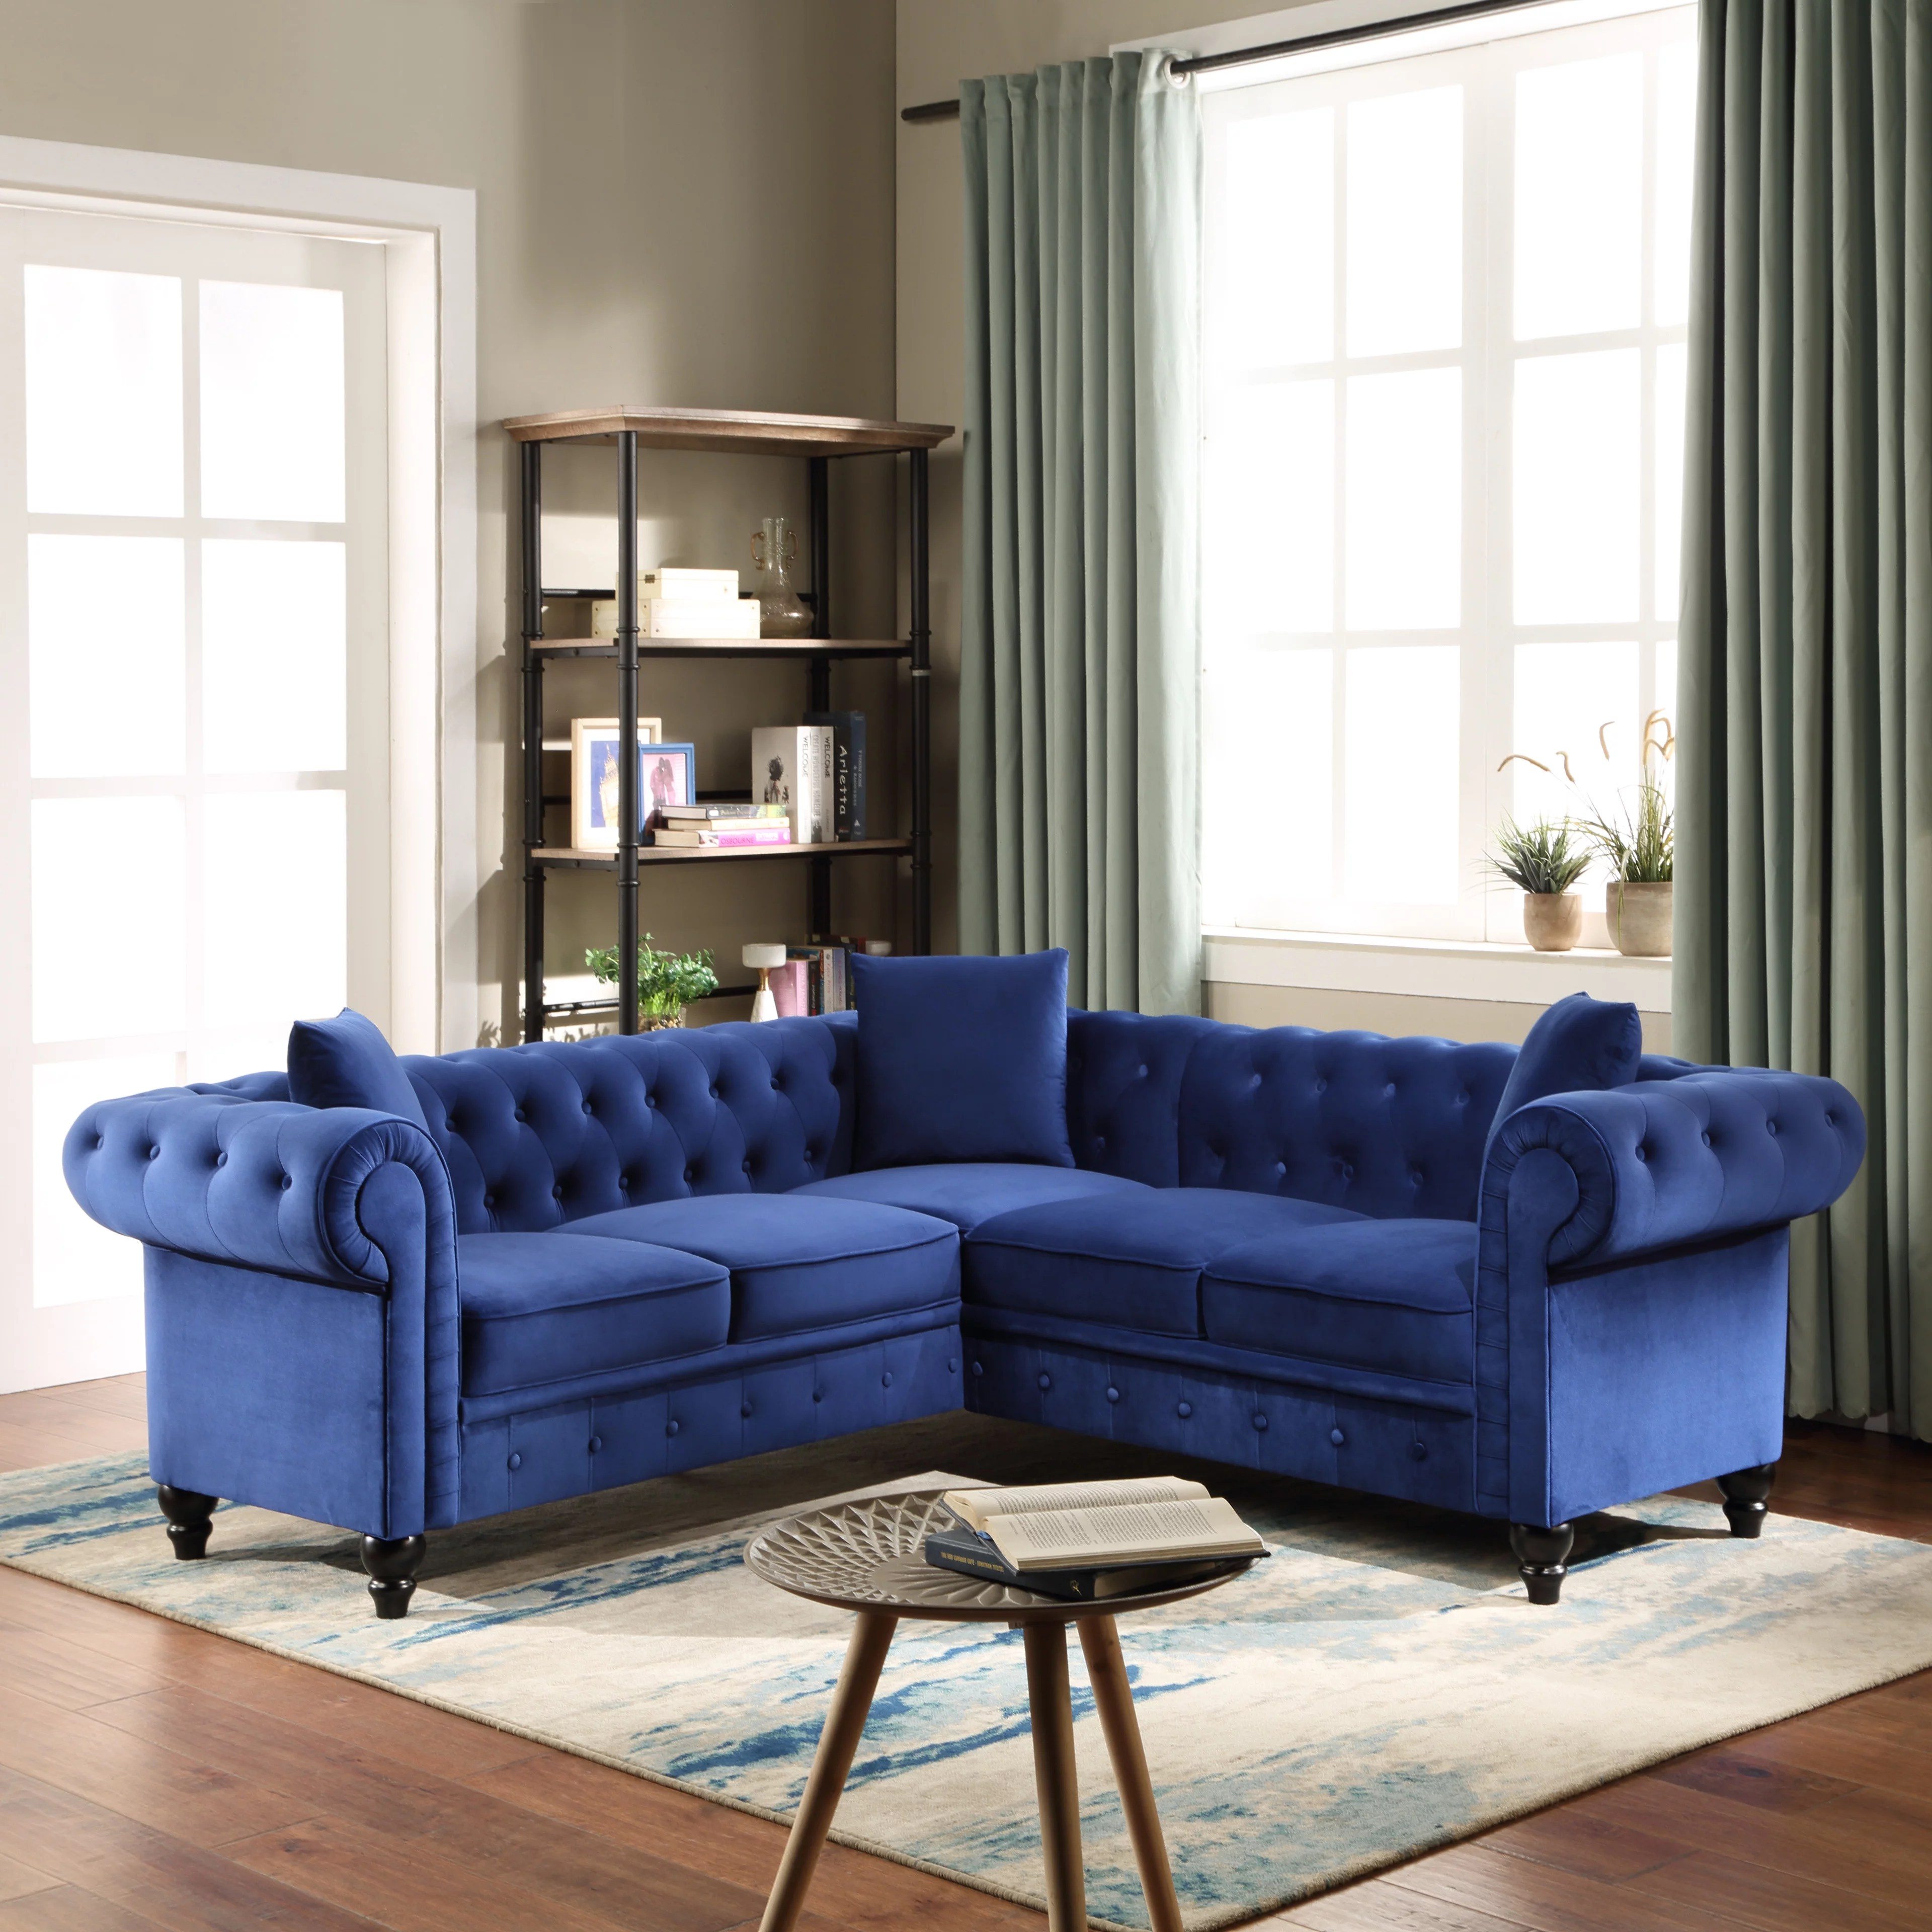 velvet tufted sofa for living room urhomepro mid century l shape sectional sofa classic chesterfield sofa with rolled arm and pillows elegant couch